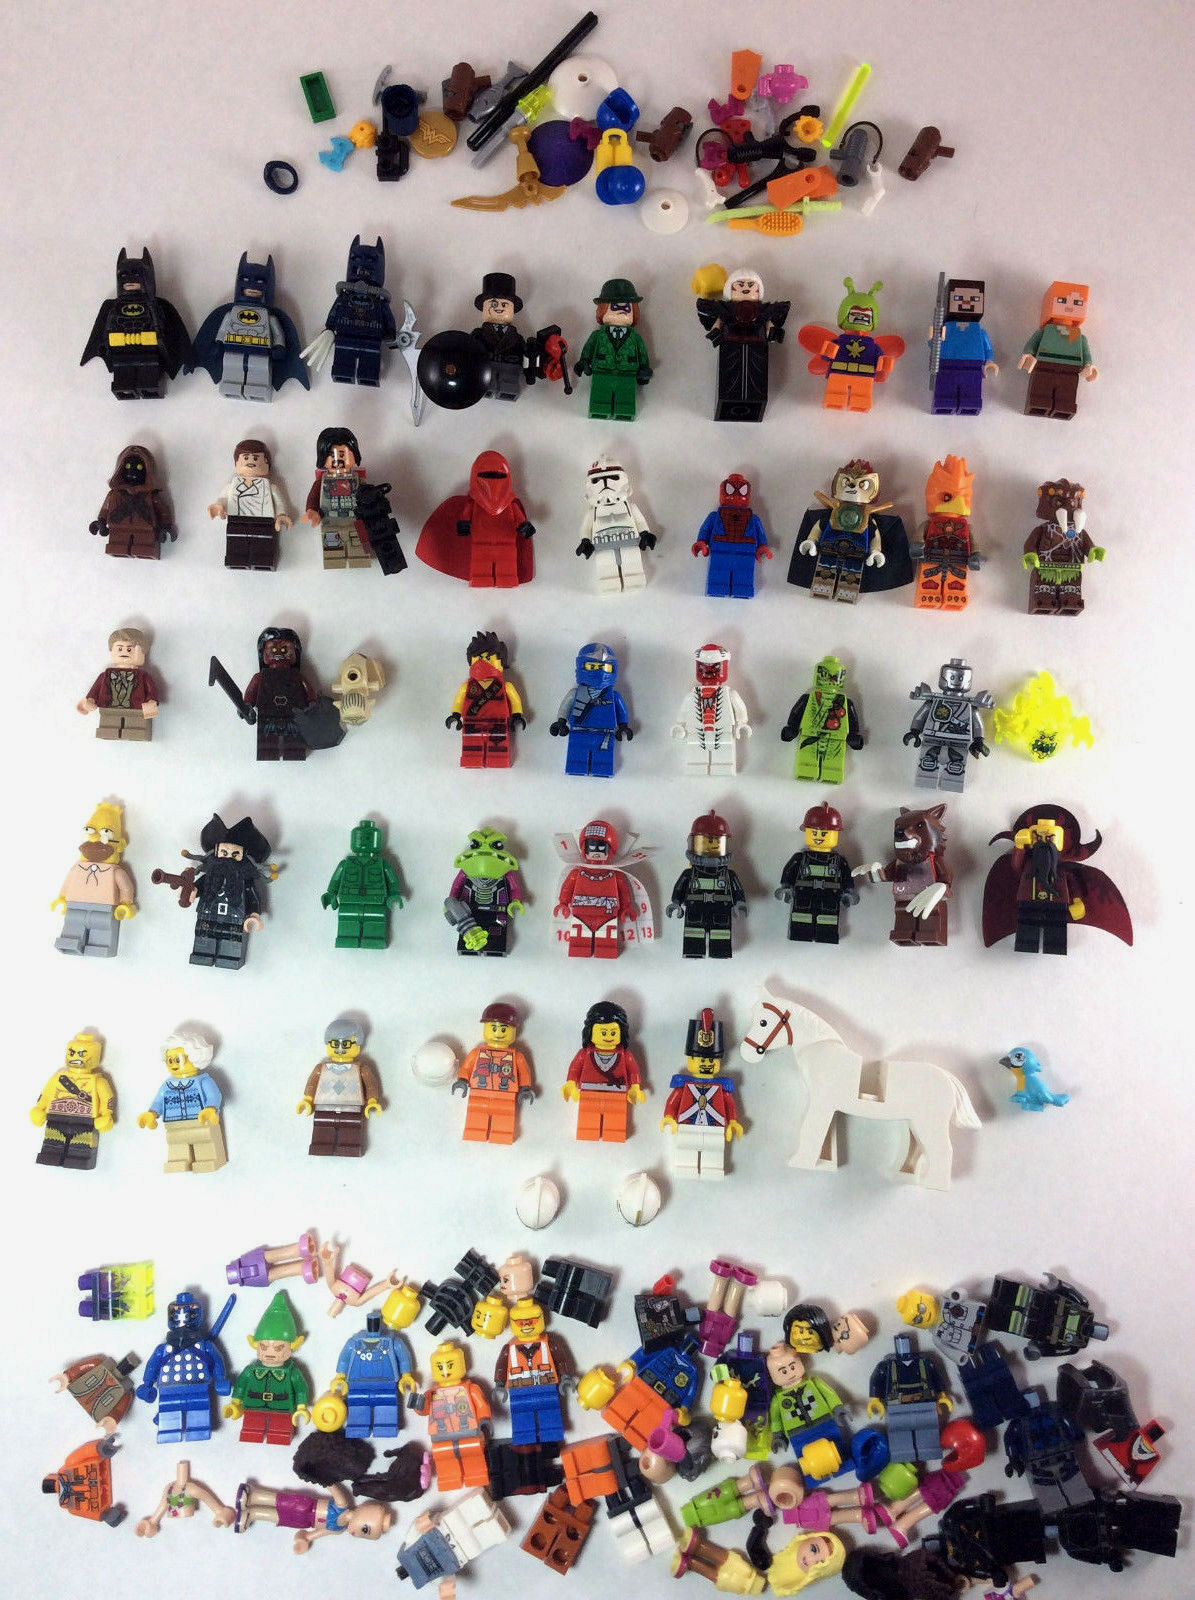 HUGE 45+ Lego Minifigure & Accessories Parts Lot Batman Star Wars LOTR Minecraft